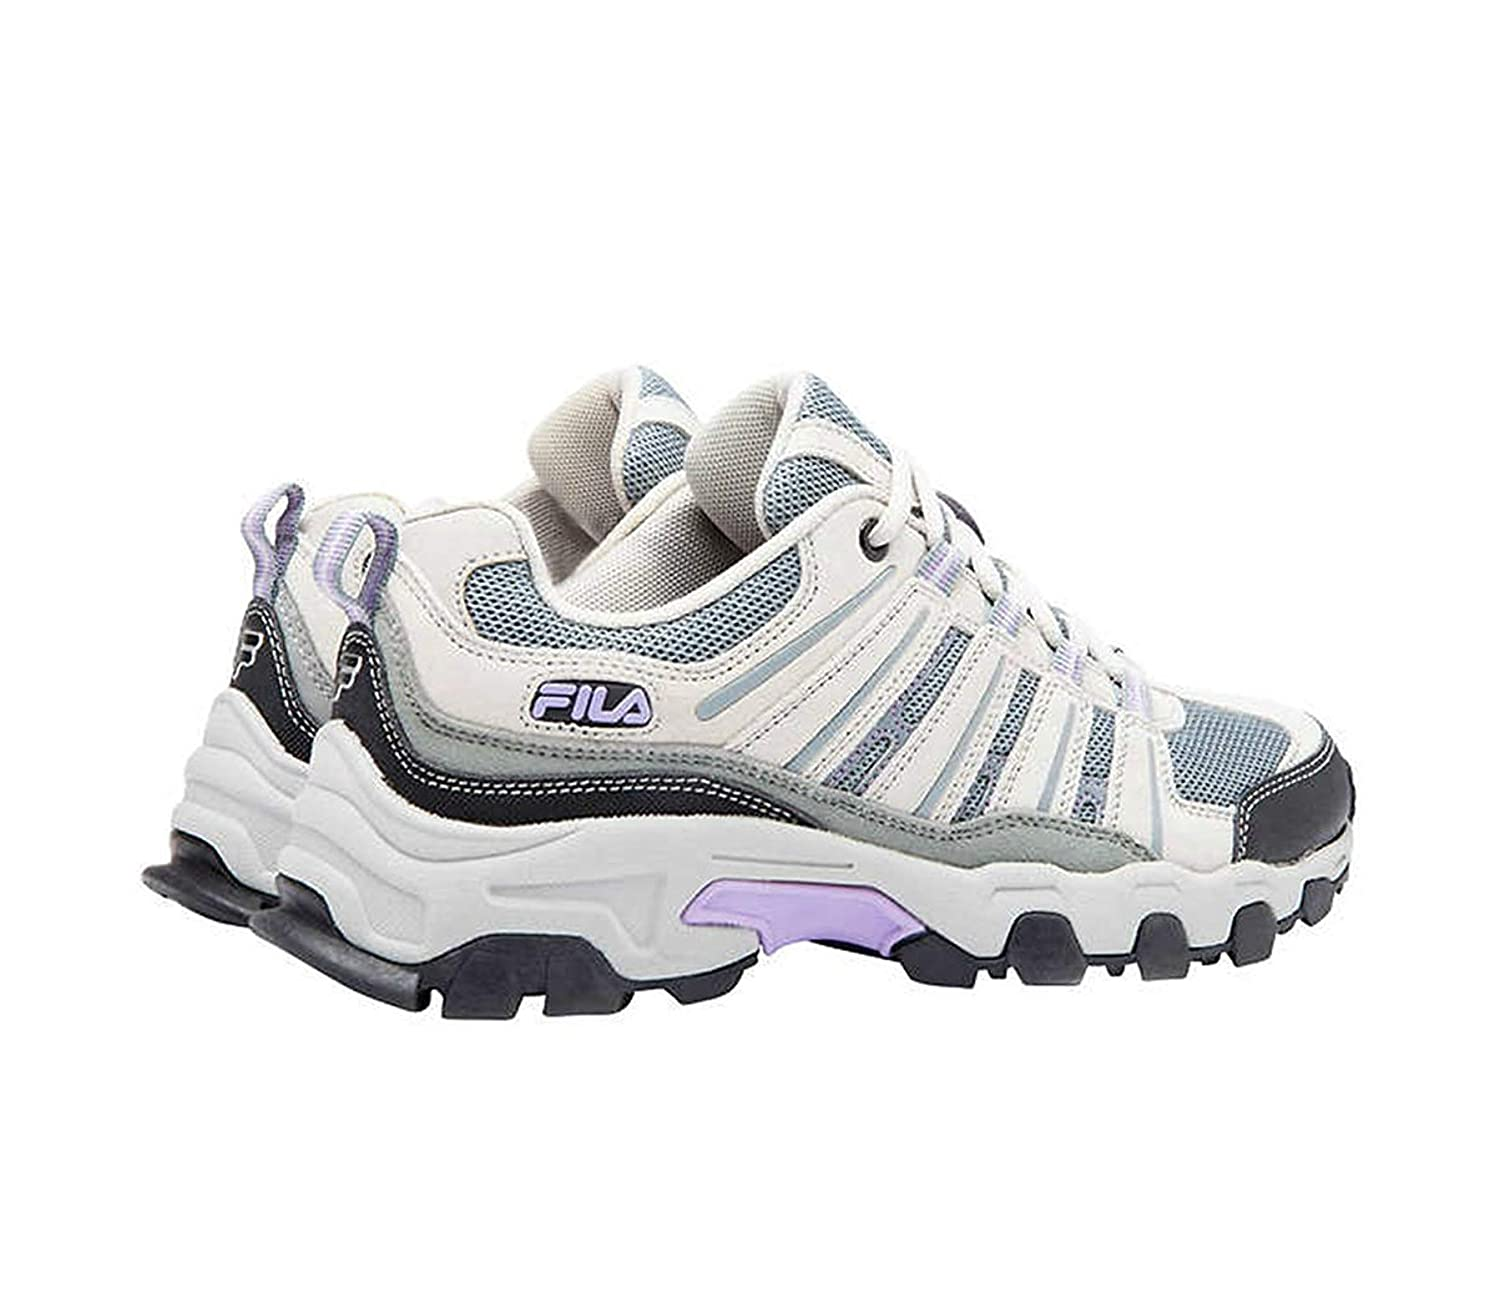 Fila Women s Day Hiker Shoes 8.5